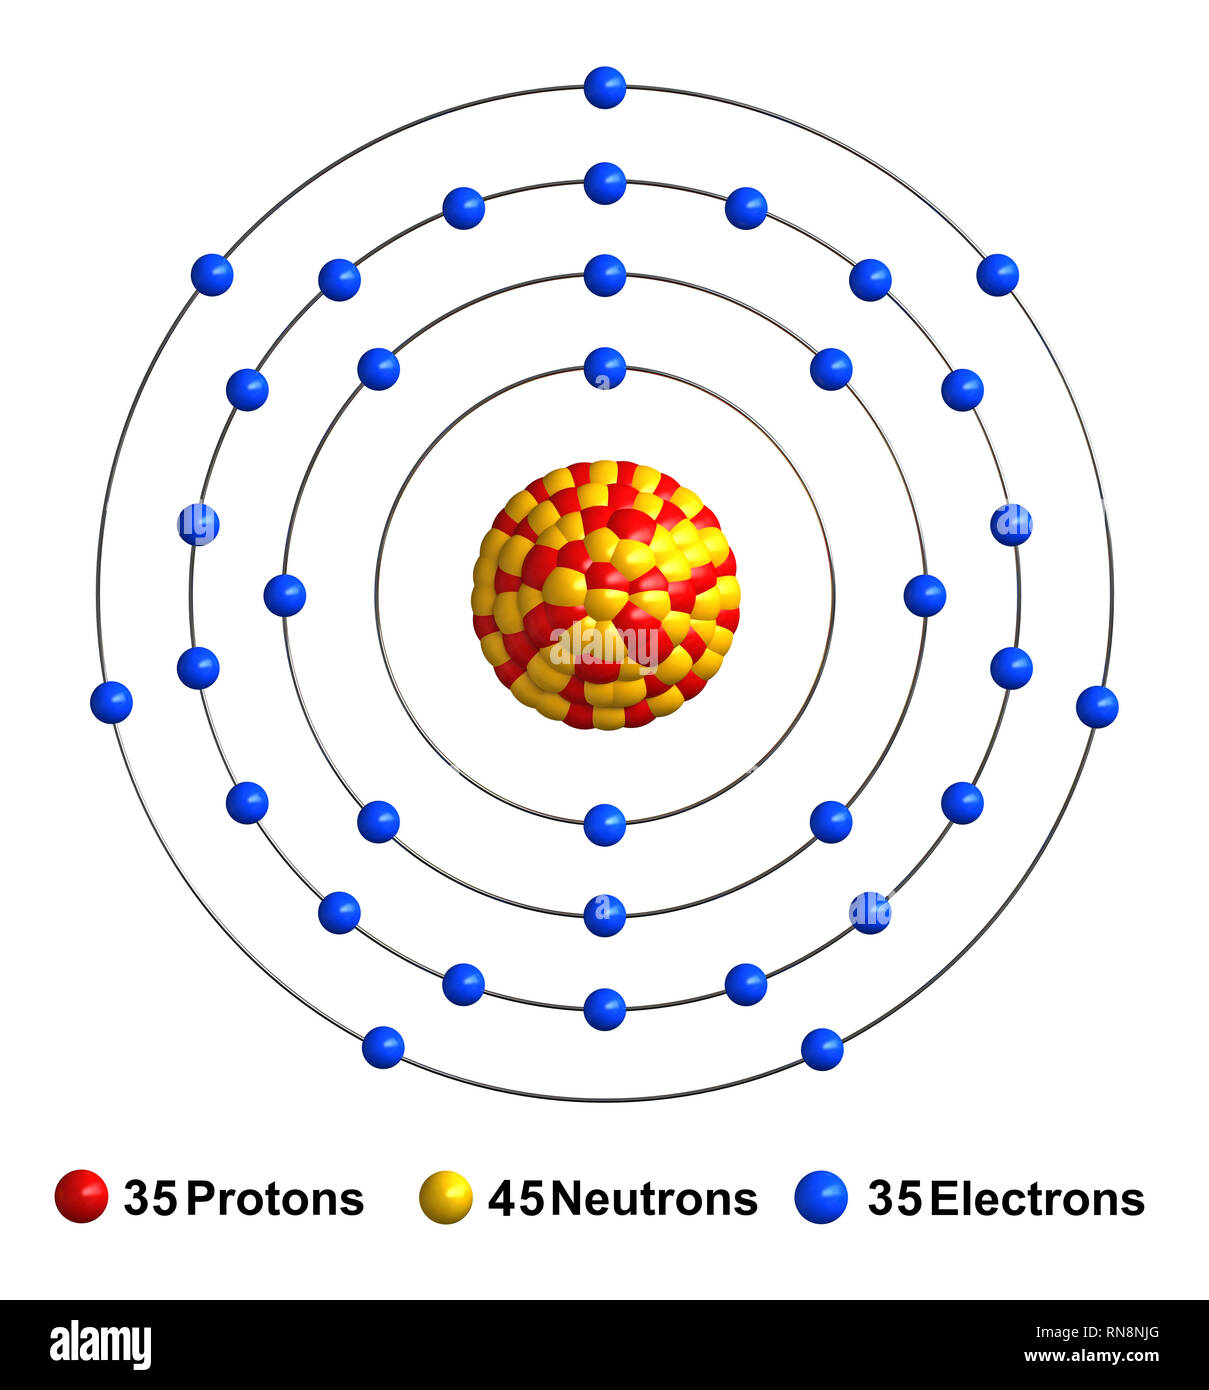 Protons And Neutrons Stock Photos Amp Protons And Neutrons